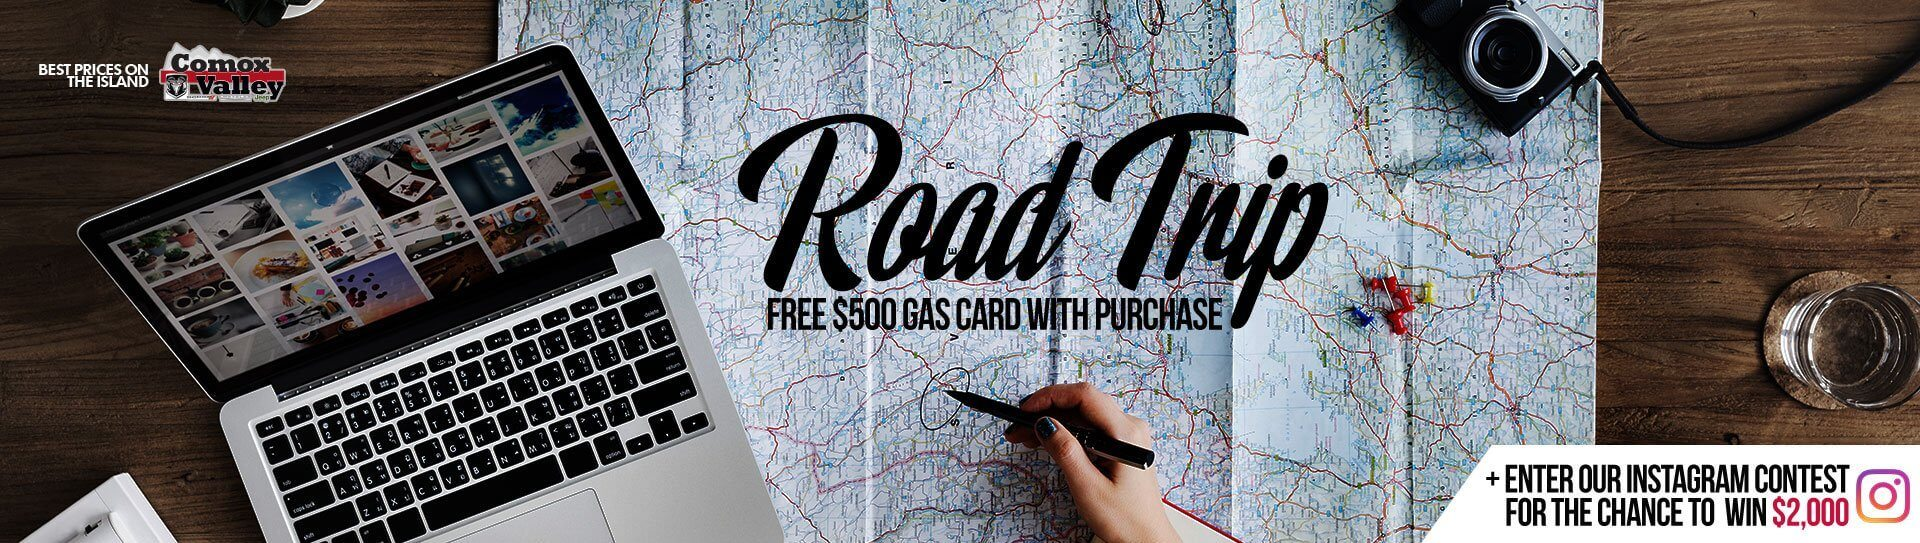 Road Trip Event on now at Comox Valley Dodge! $500 gas card with purchase.